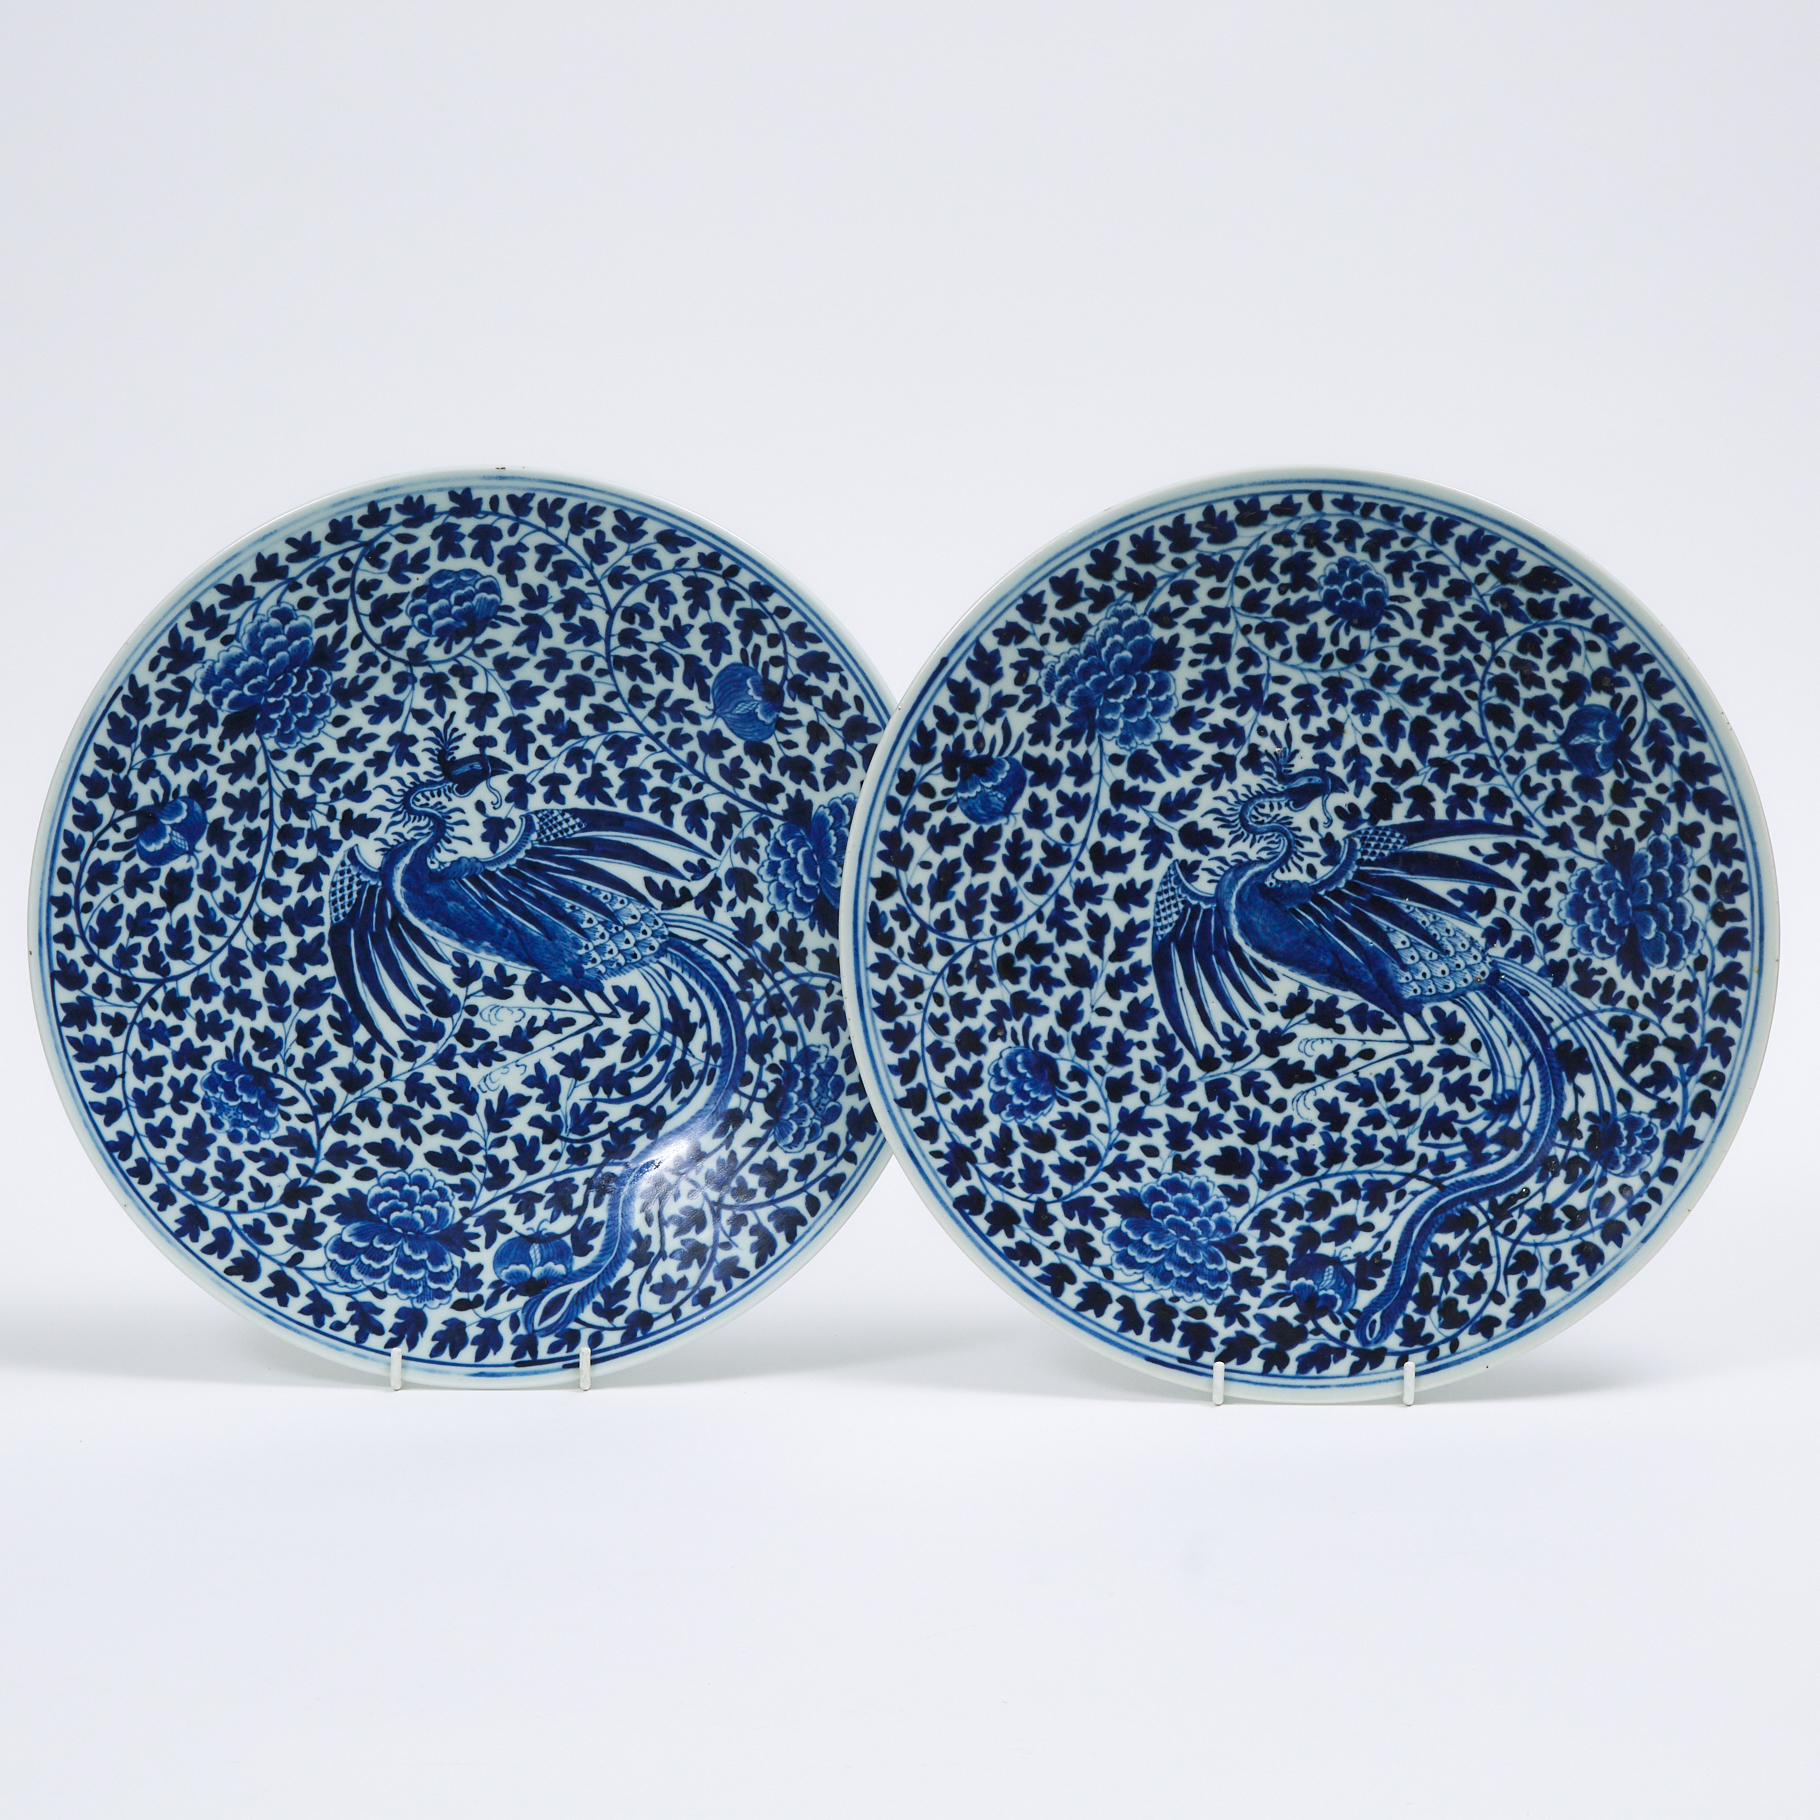 A Pair of Blue and White 'Phoenix' Chargers, Qianlong Mark, 19th Century